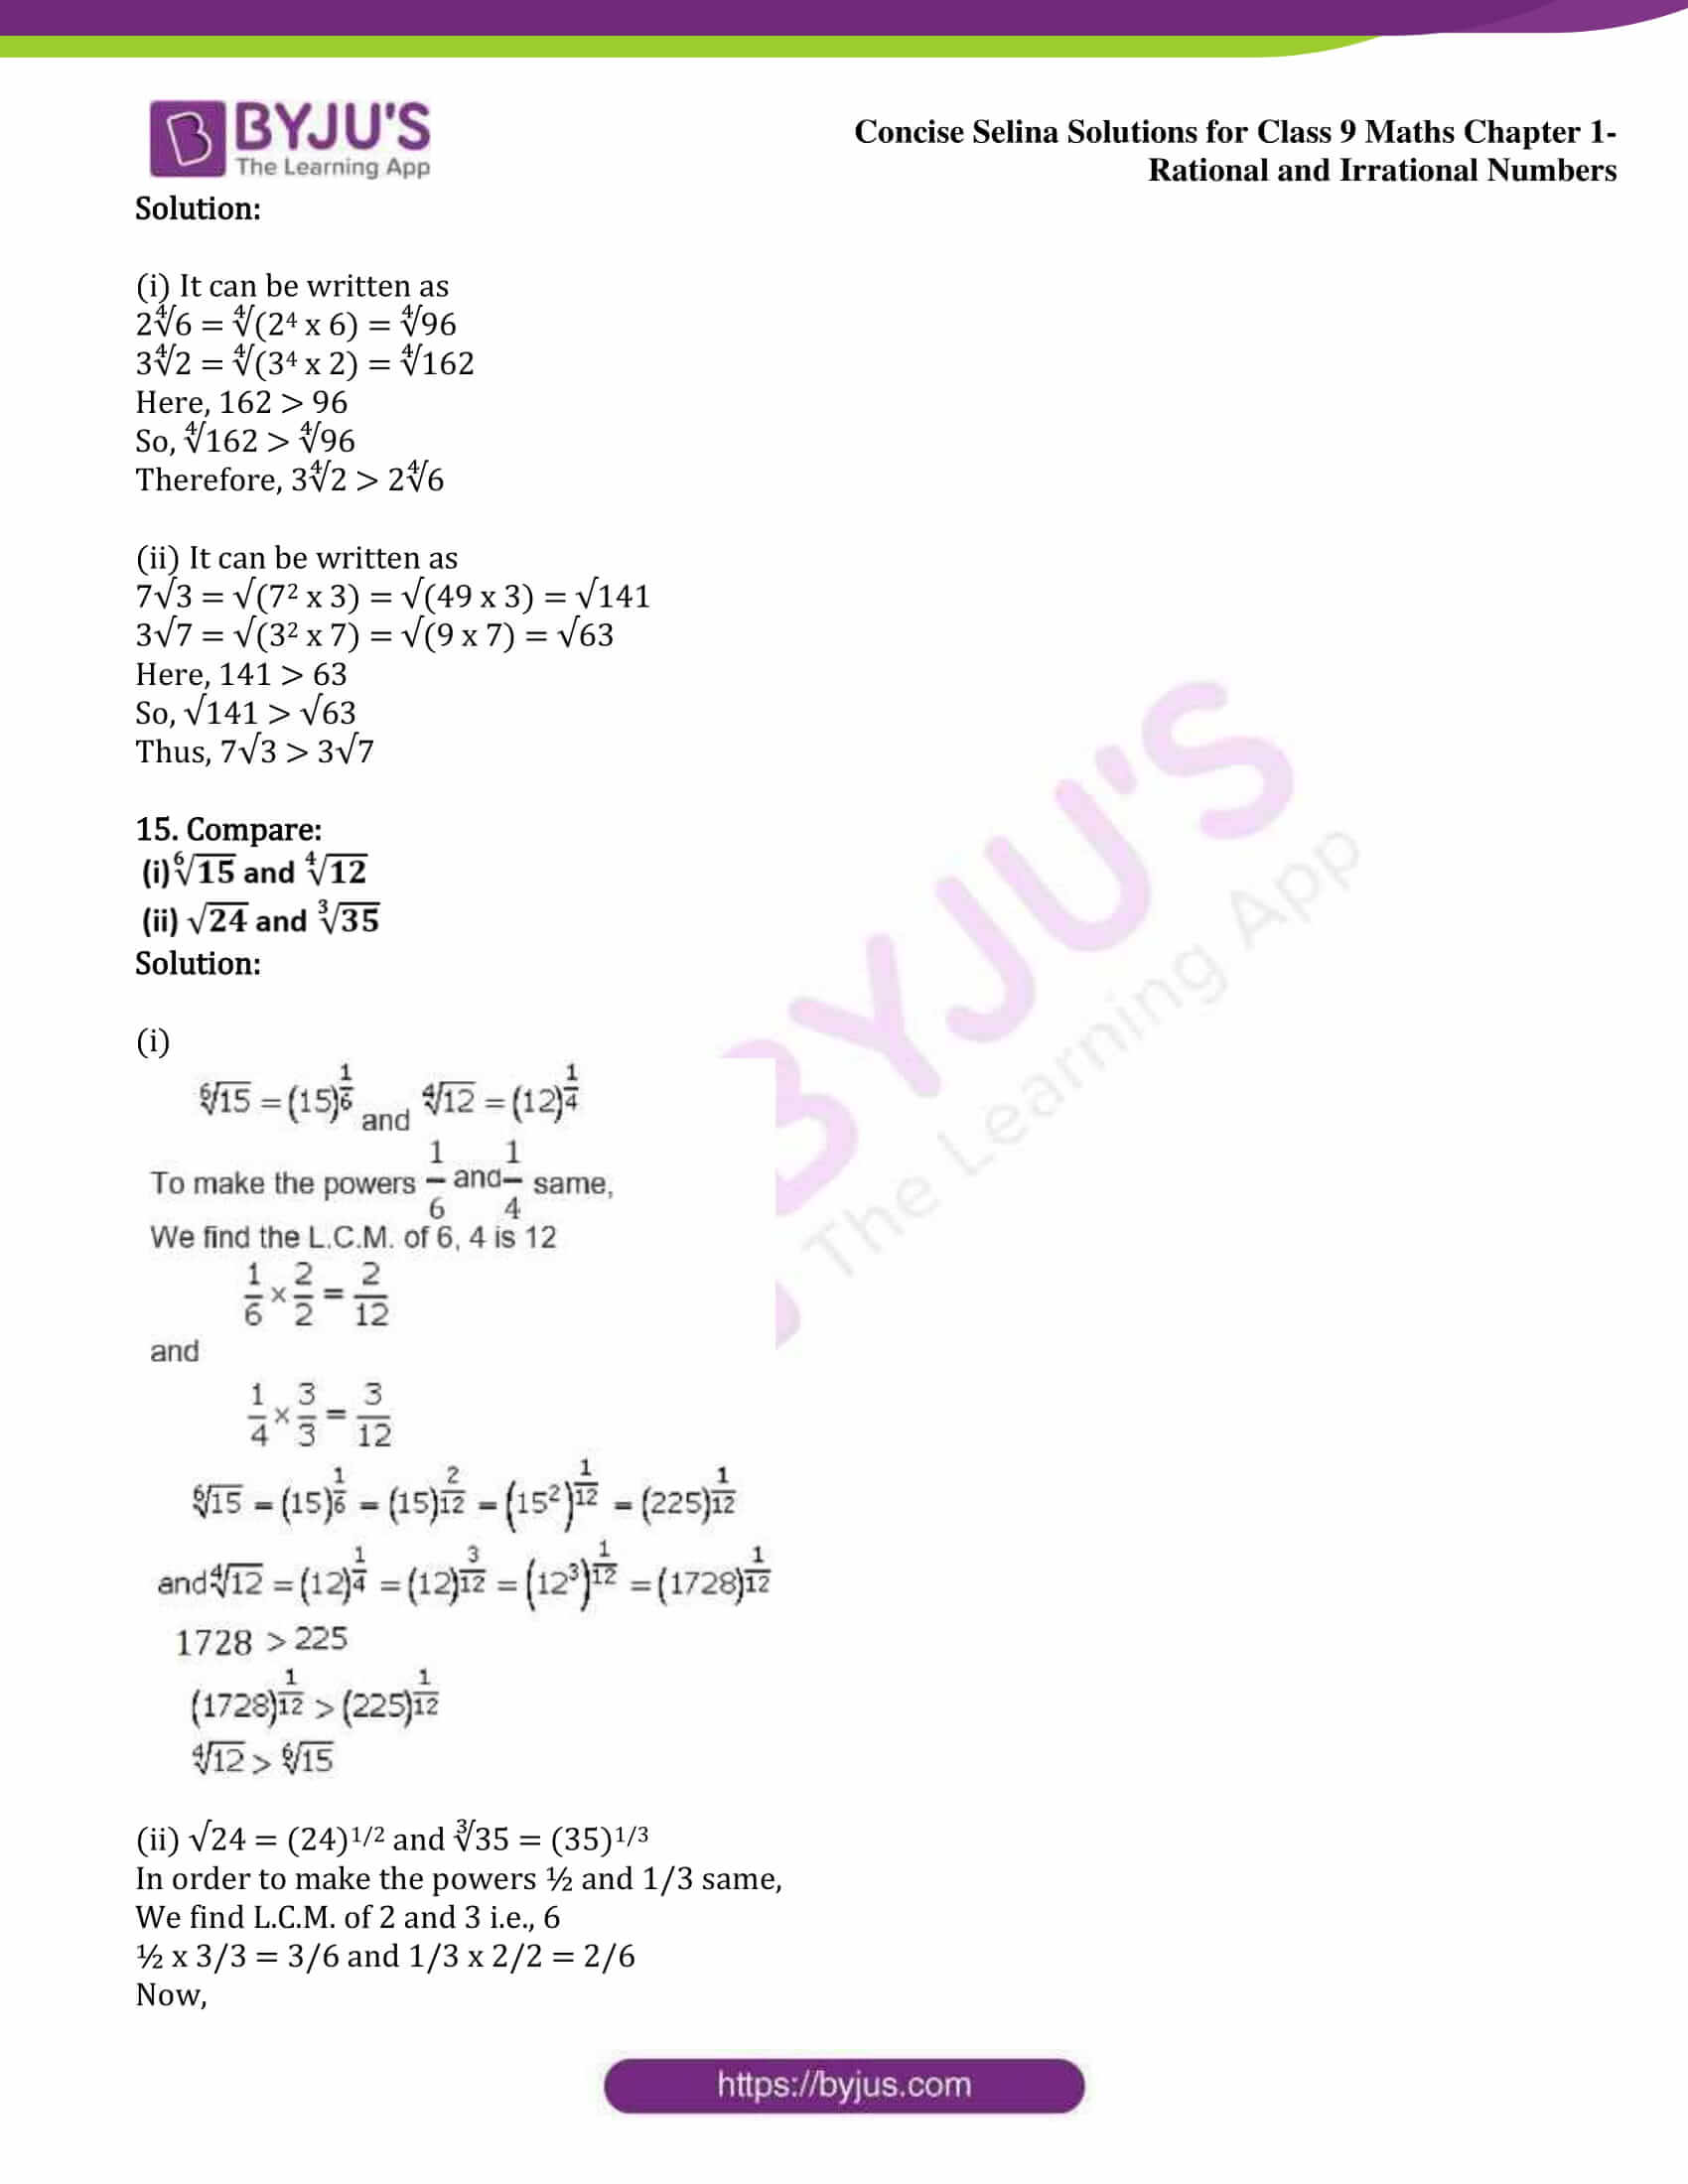 icse class 9 maths may13 selina solutions chapter 1 rational and irrational numbers 12